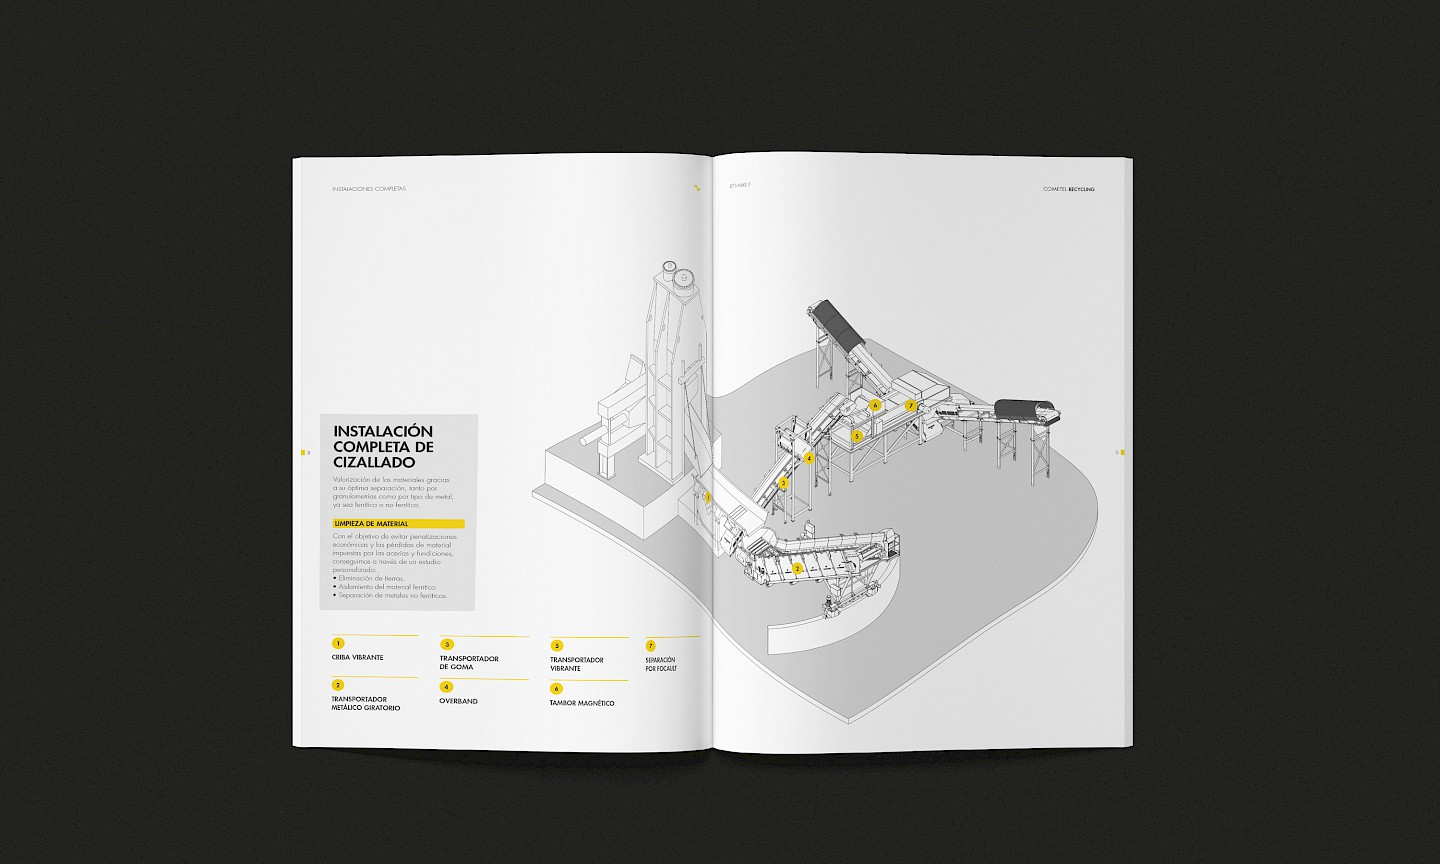 design move 04 catalogo technology cometel branding